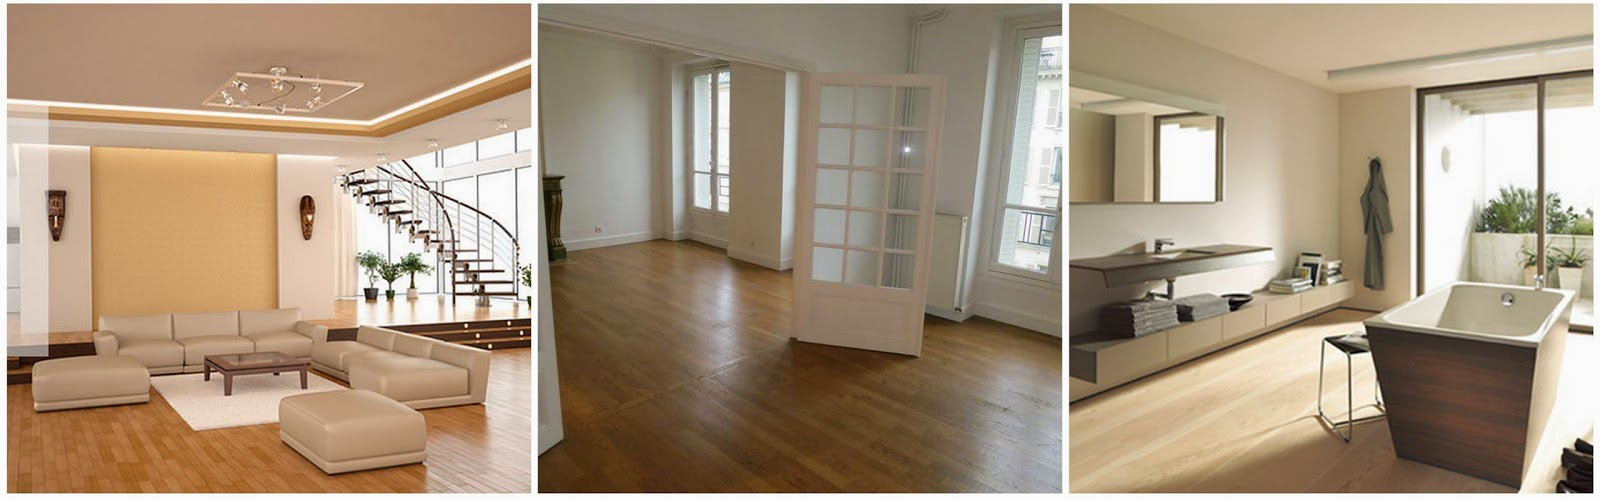 Travaux appartement 92250 la garenne colombes